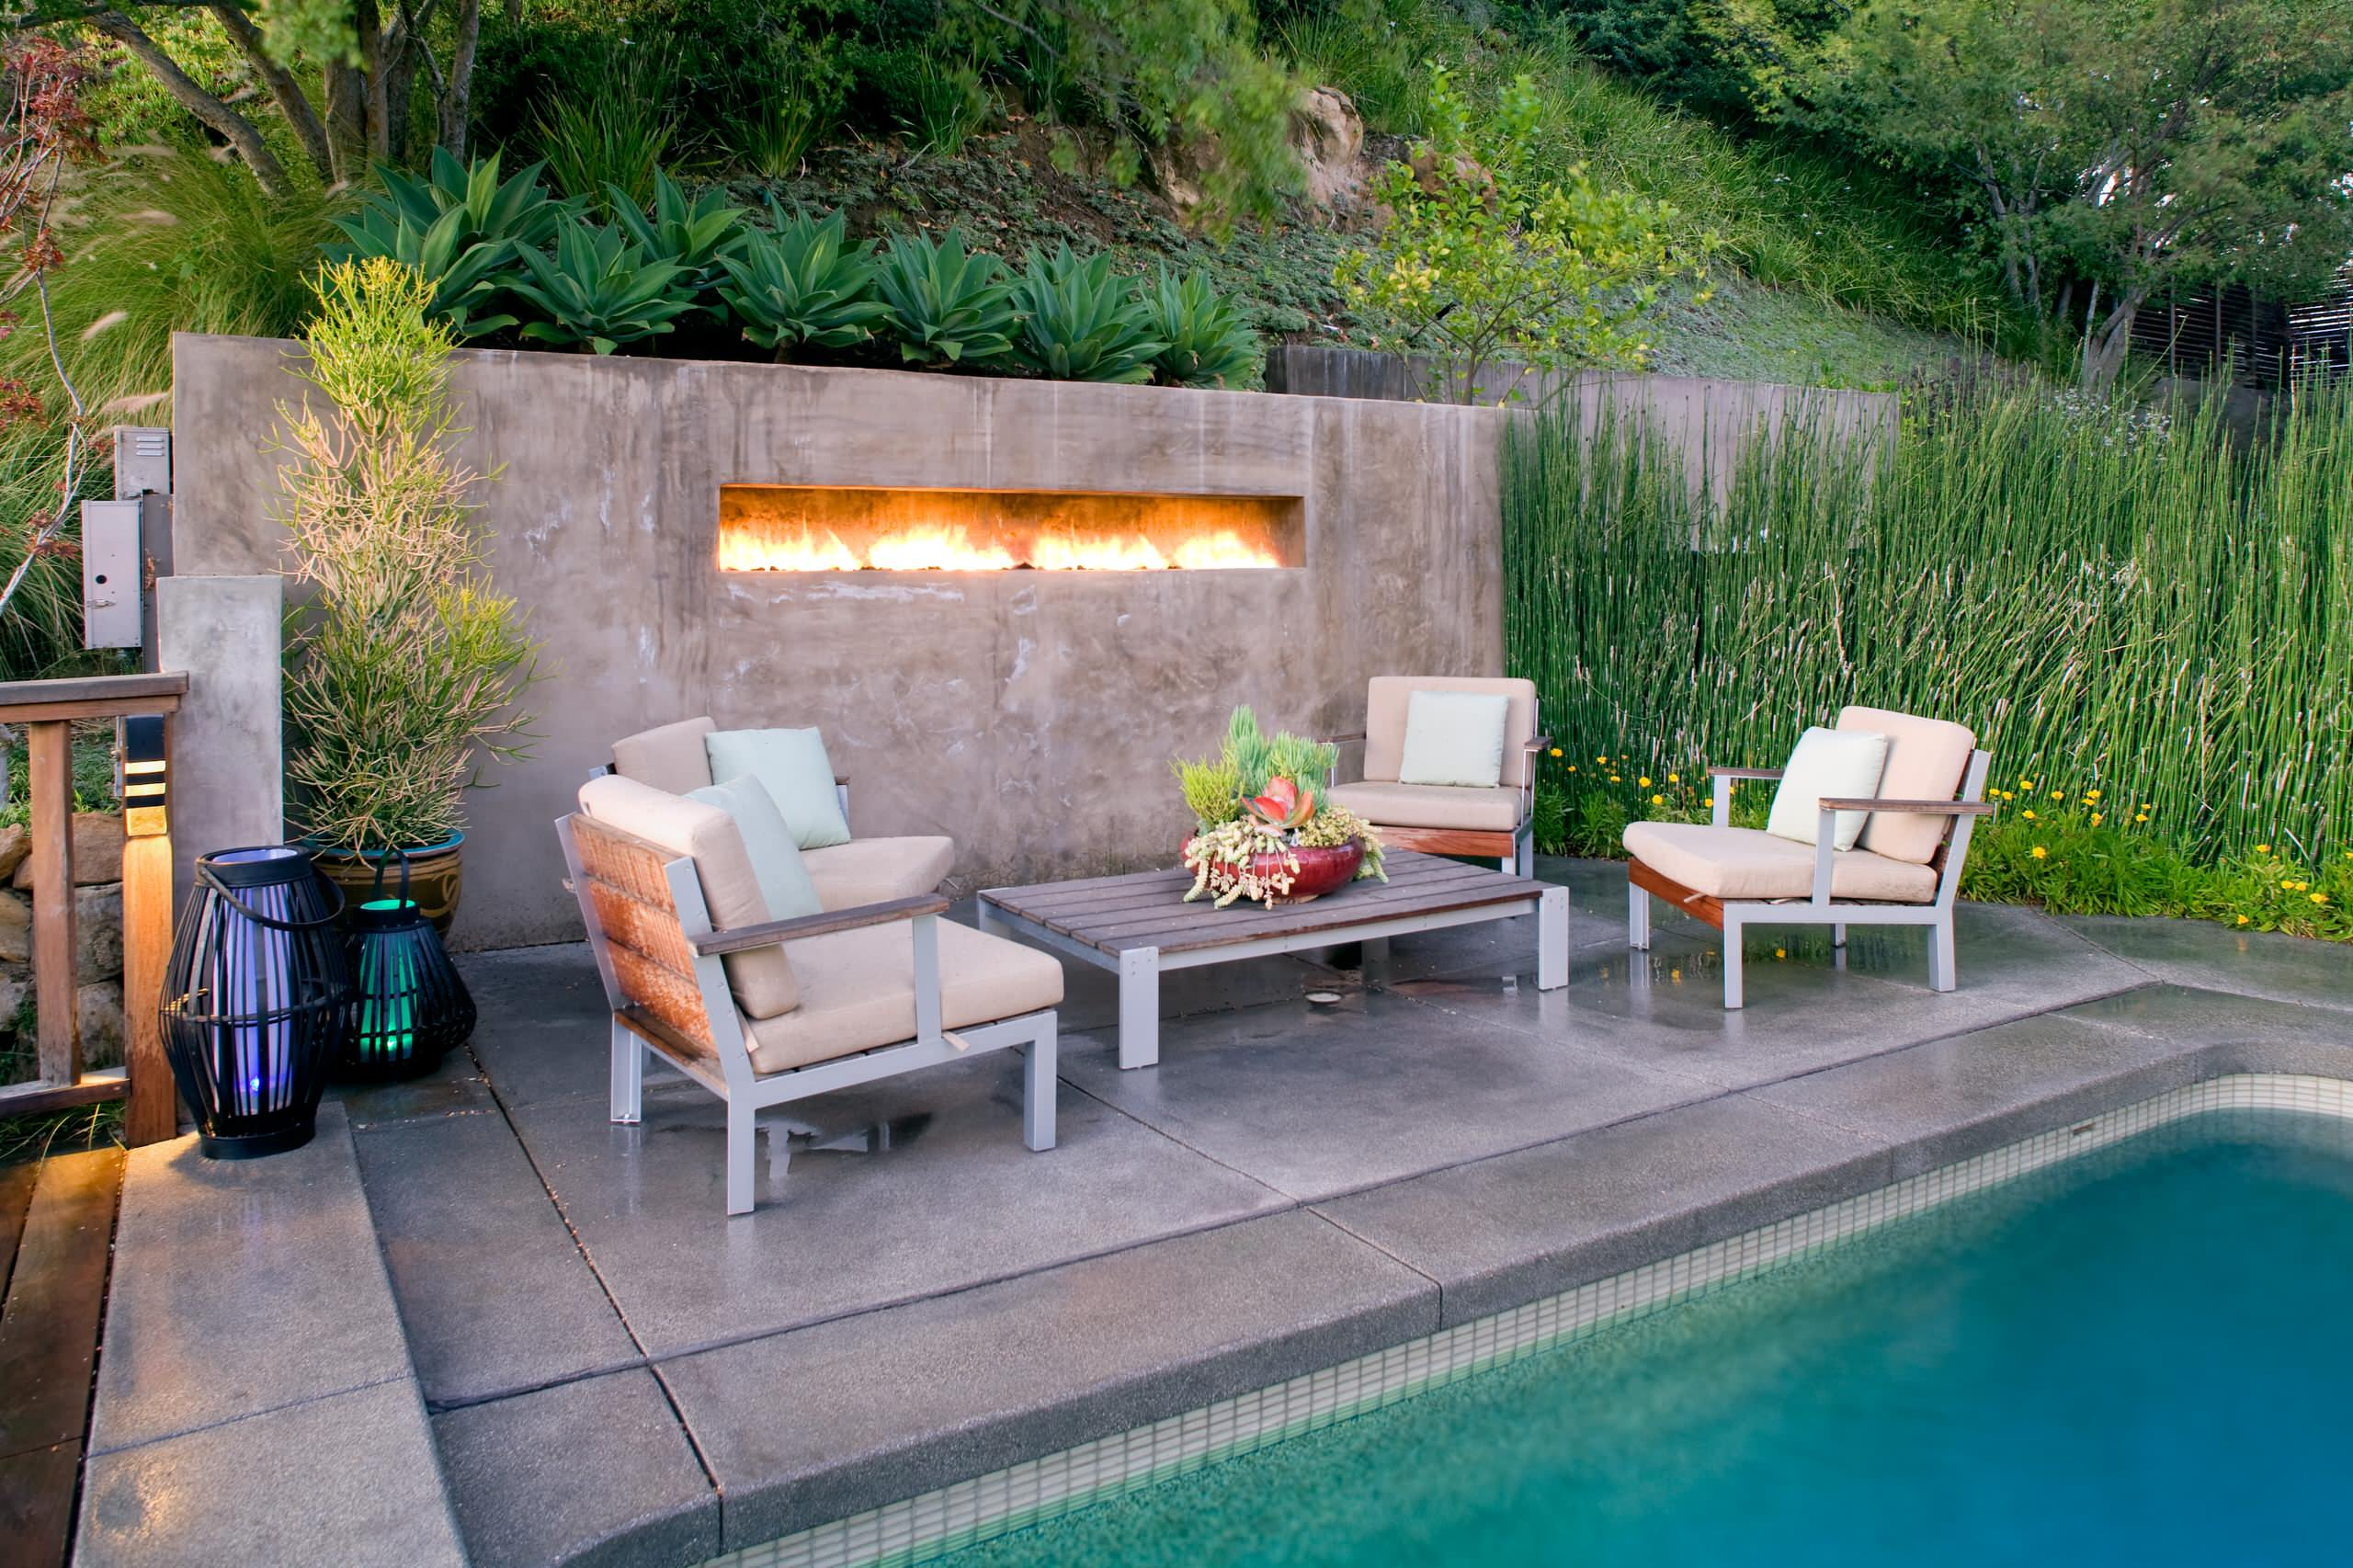 2 a refreshing mix of fire and water - Best Patio Designs